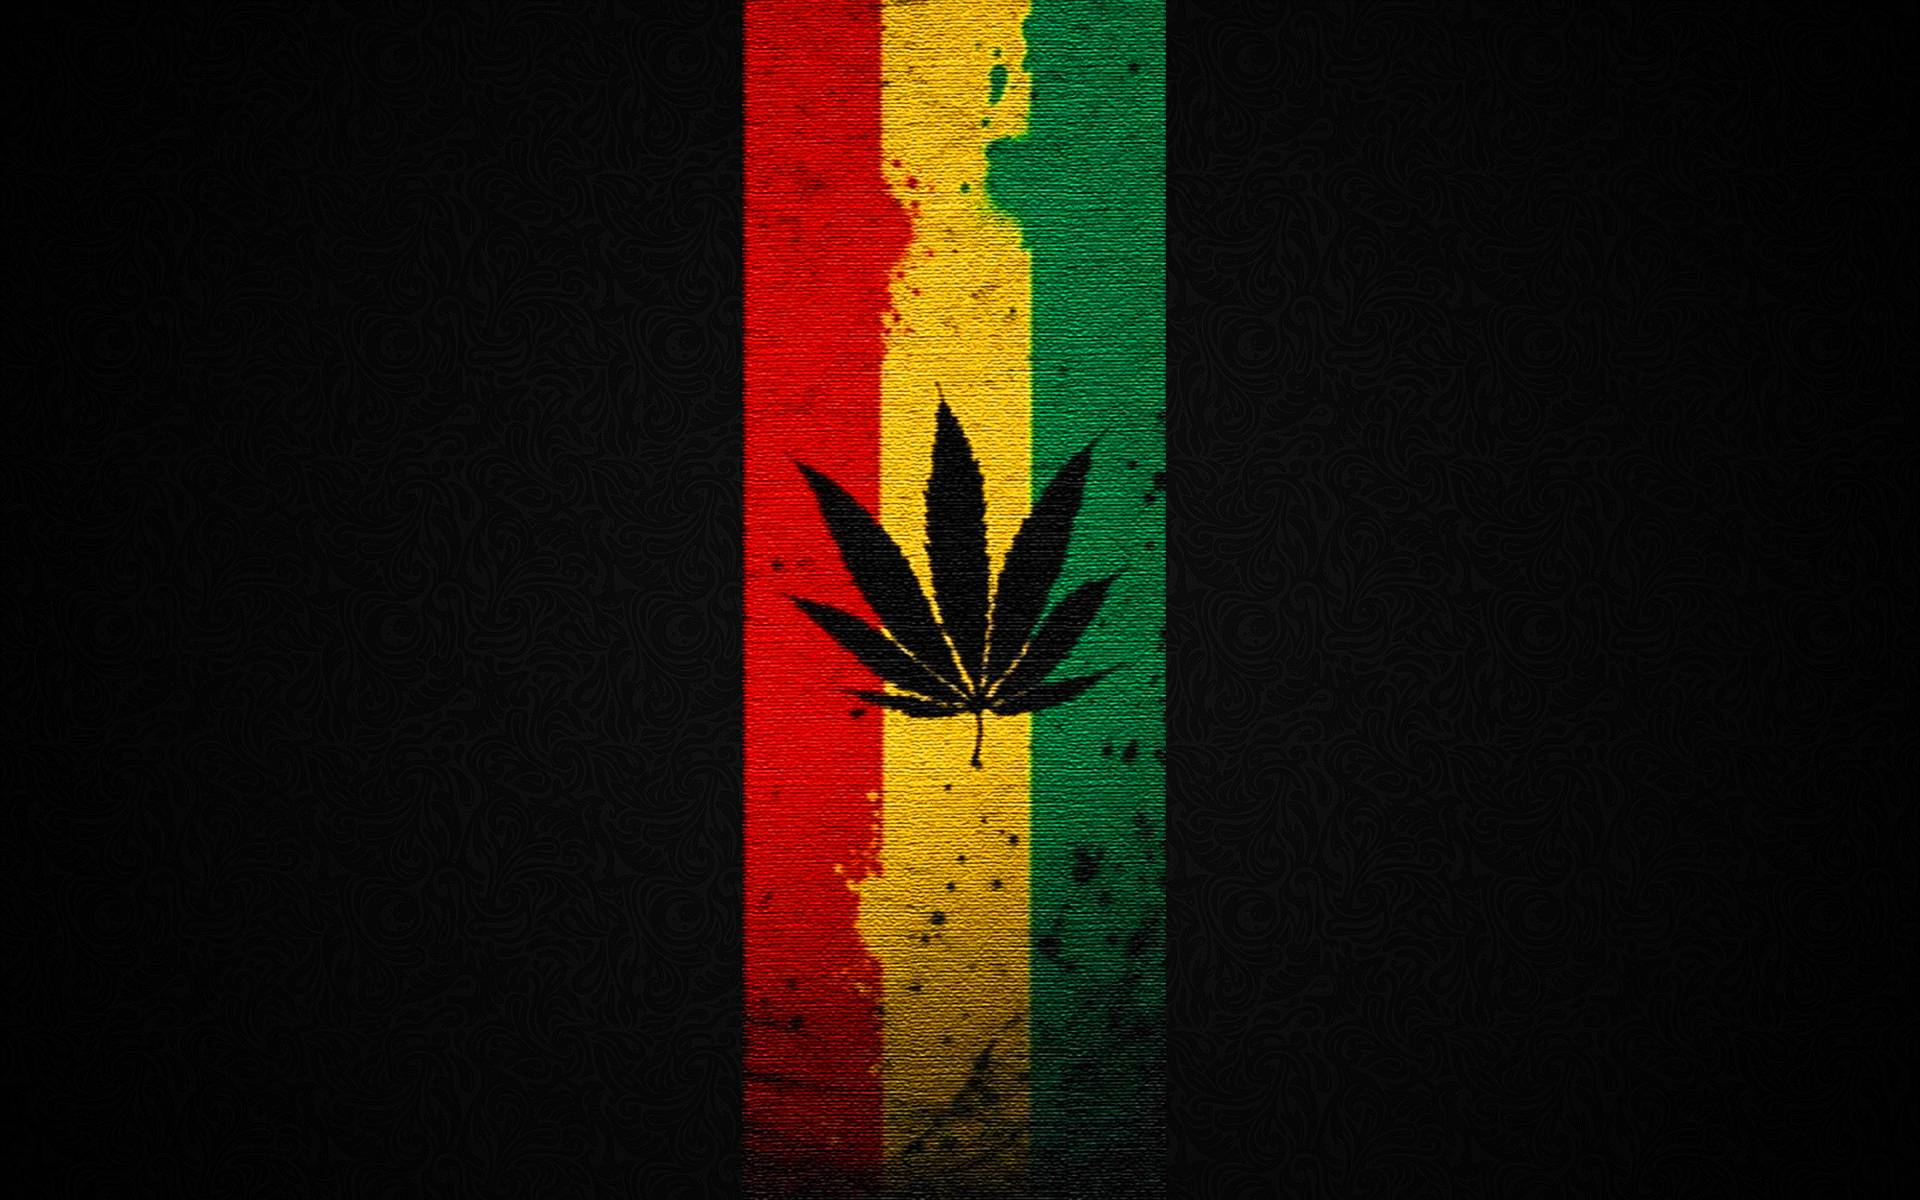 HD Rasta Wallpapers 2015 - Wallpaper Cave